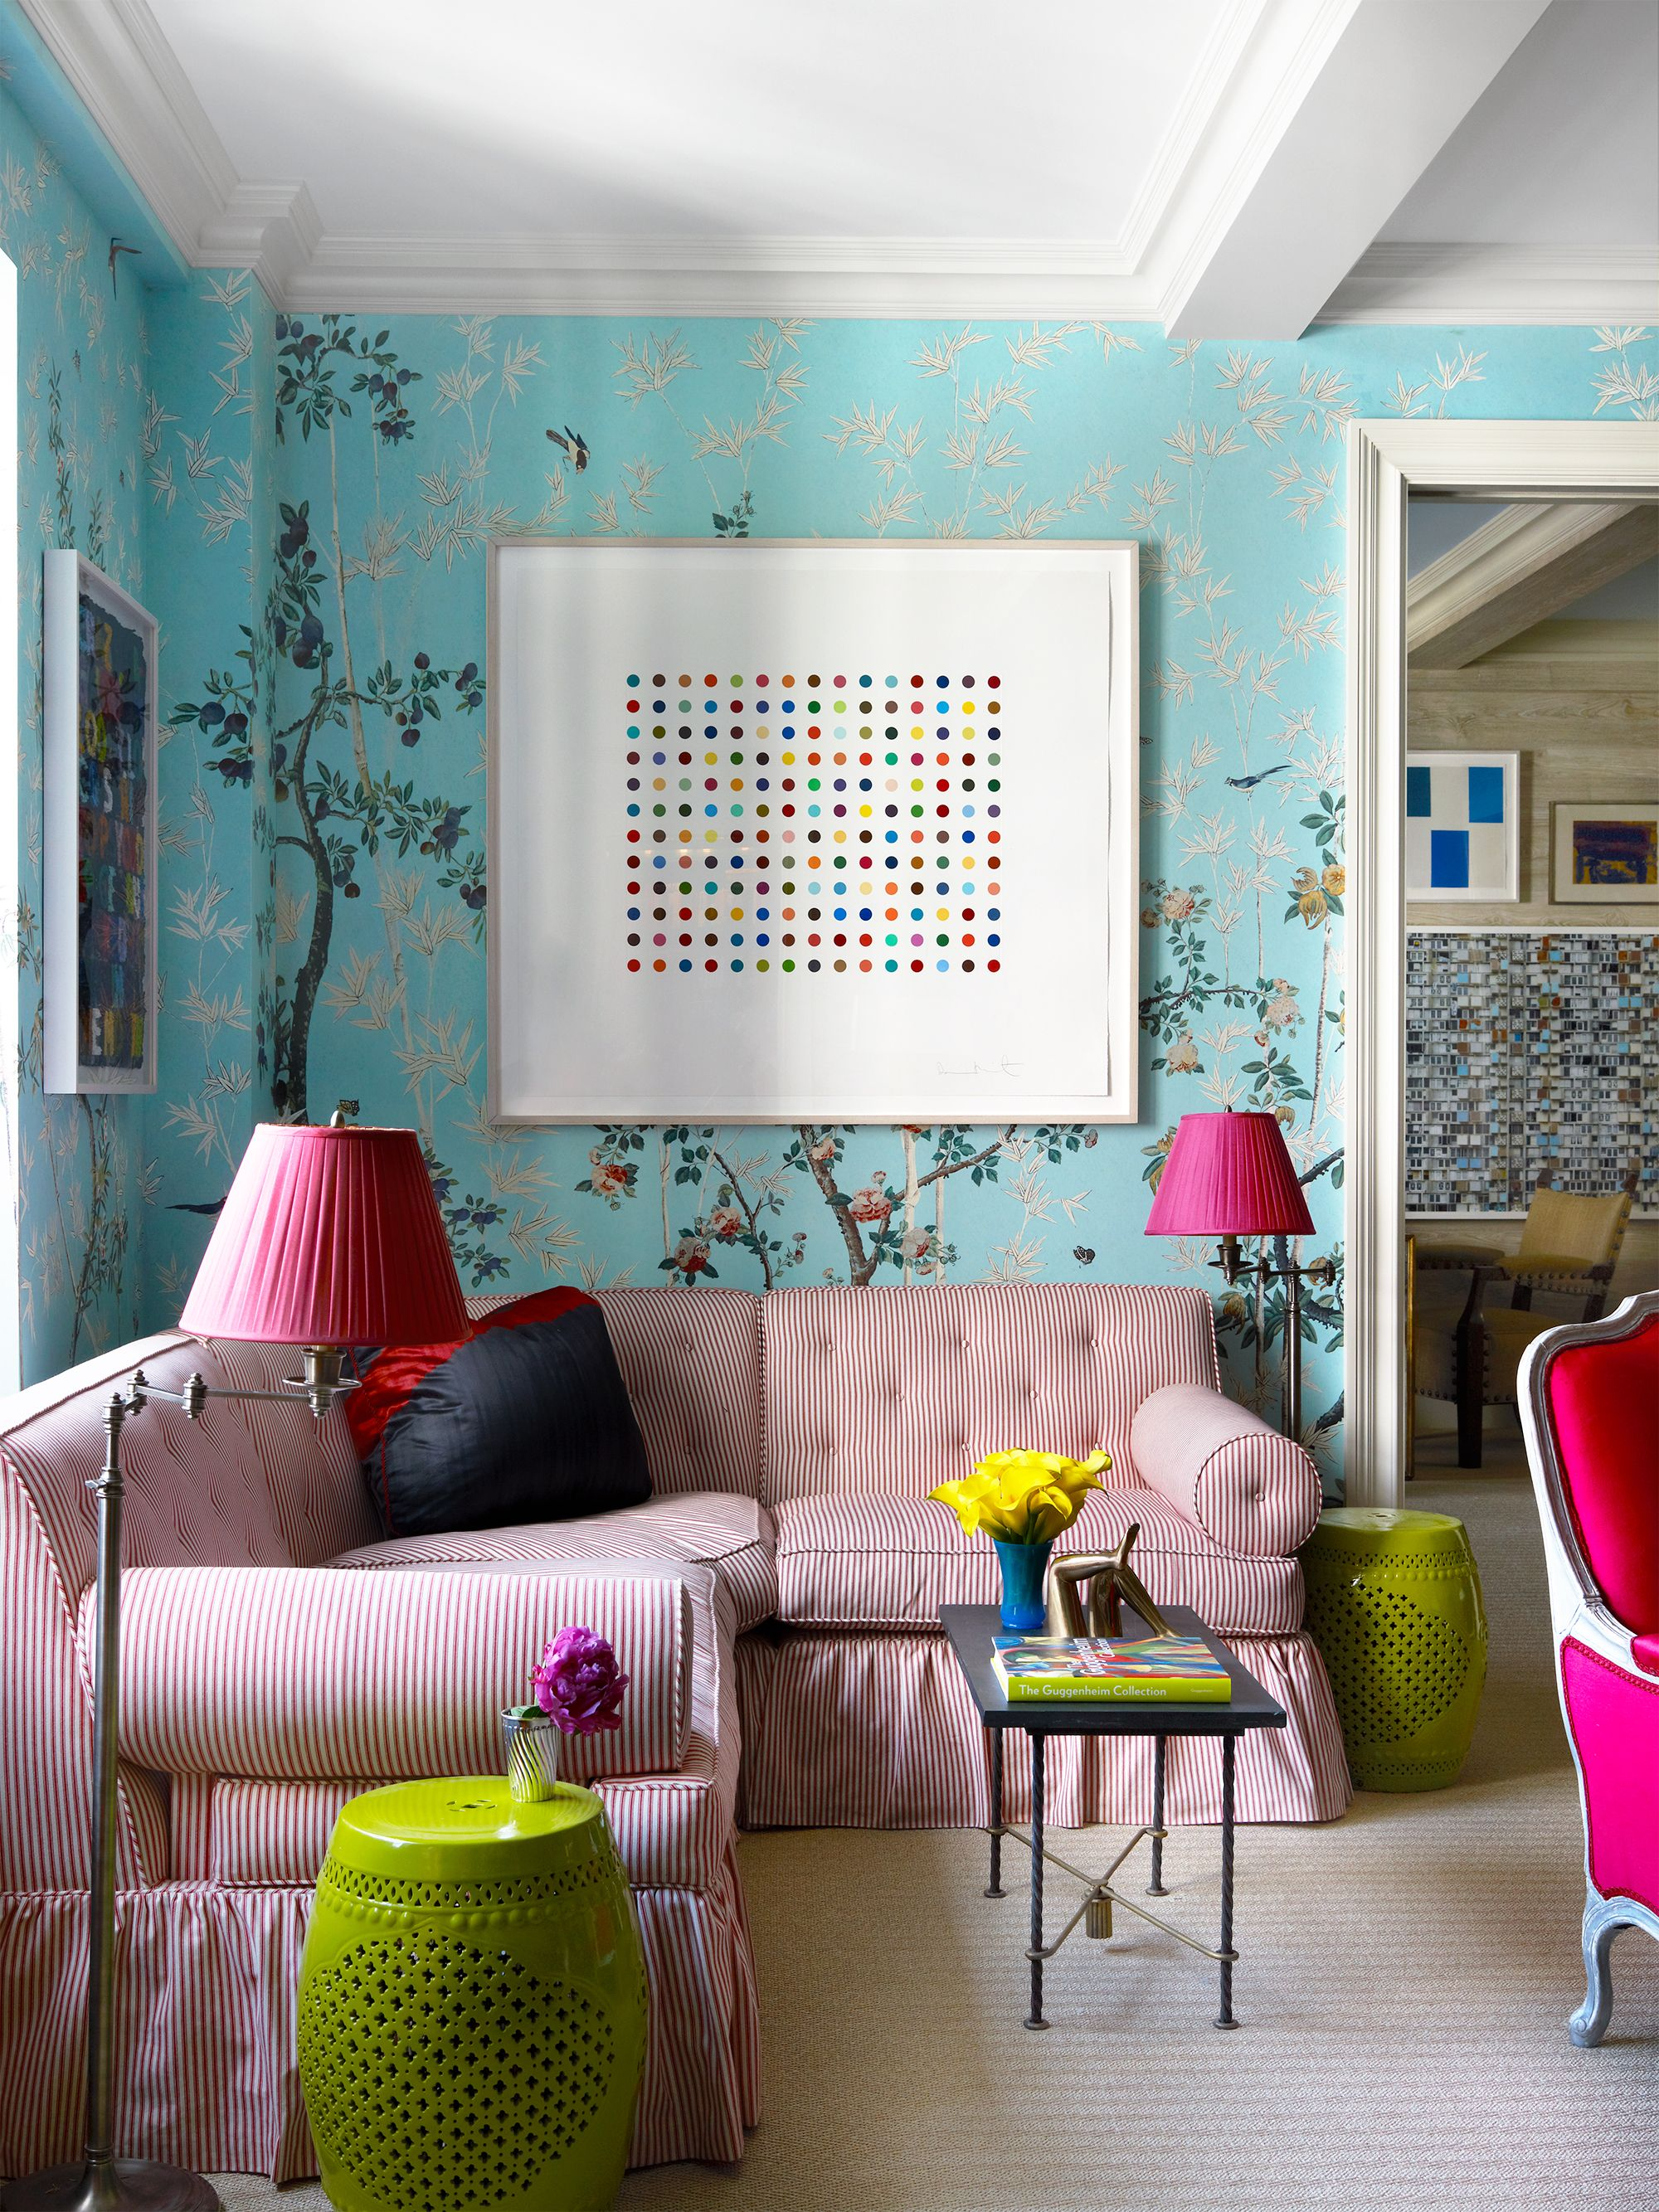 32 Best Wall Art Ideas For Every Room   Cool Wall Decor And Prints